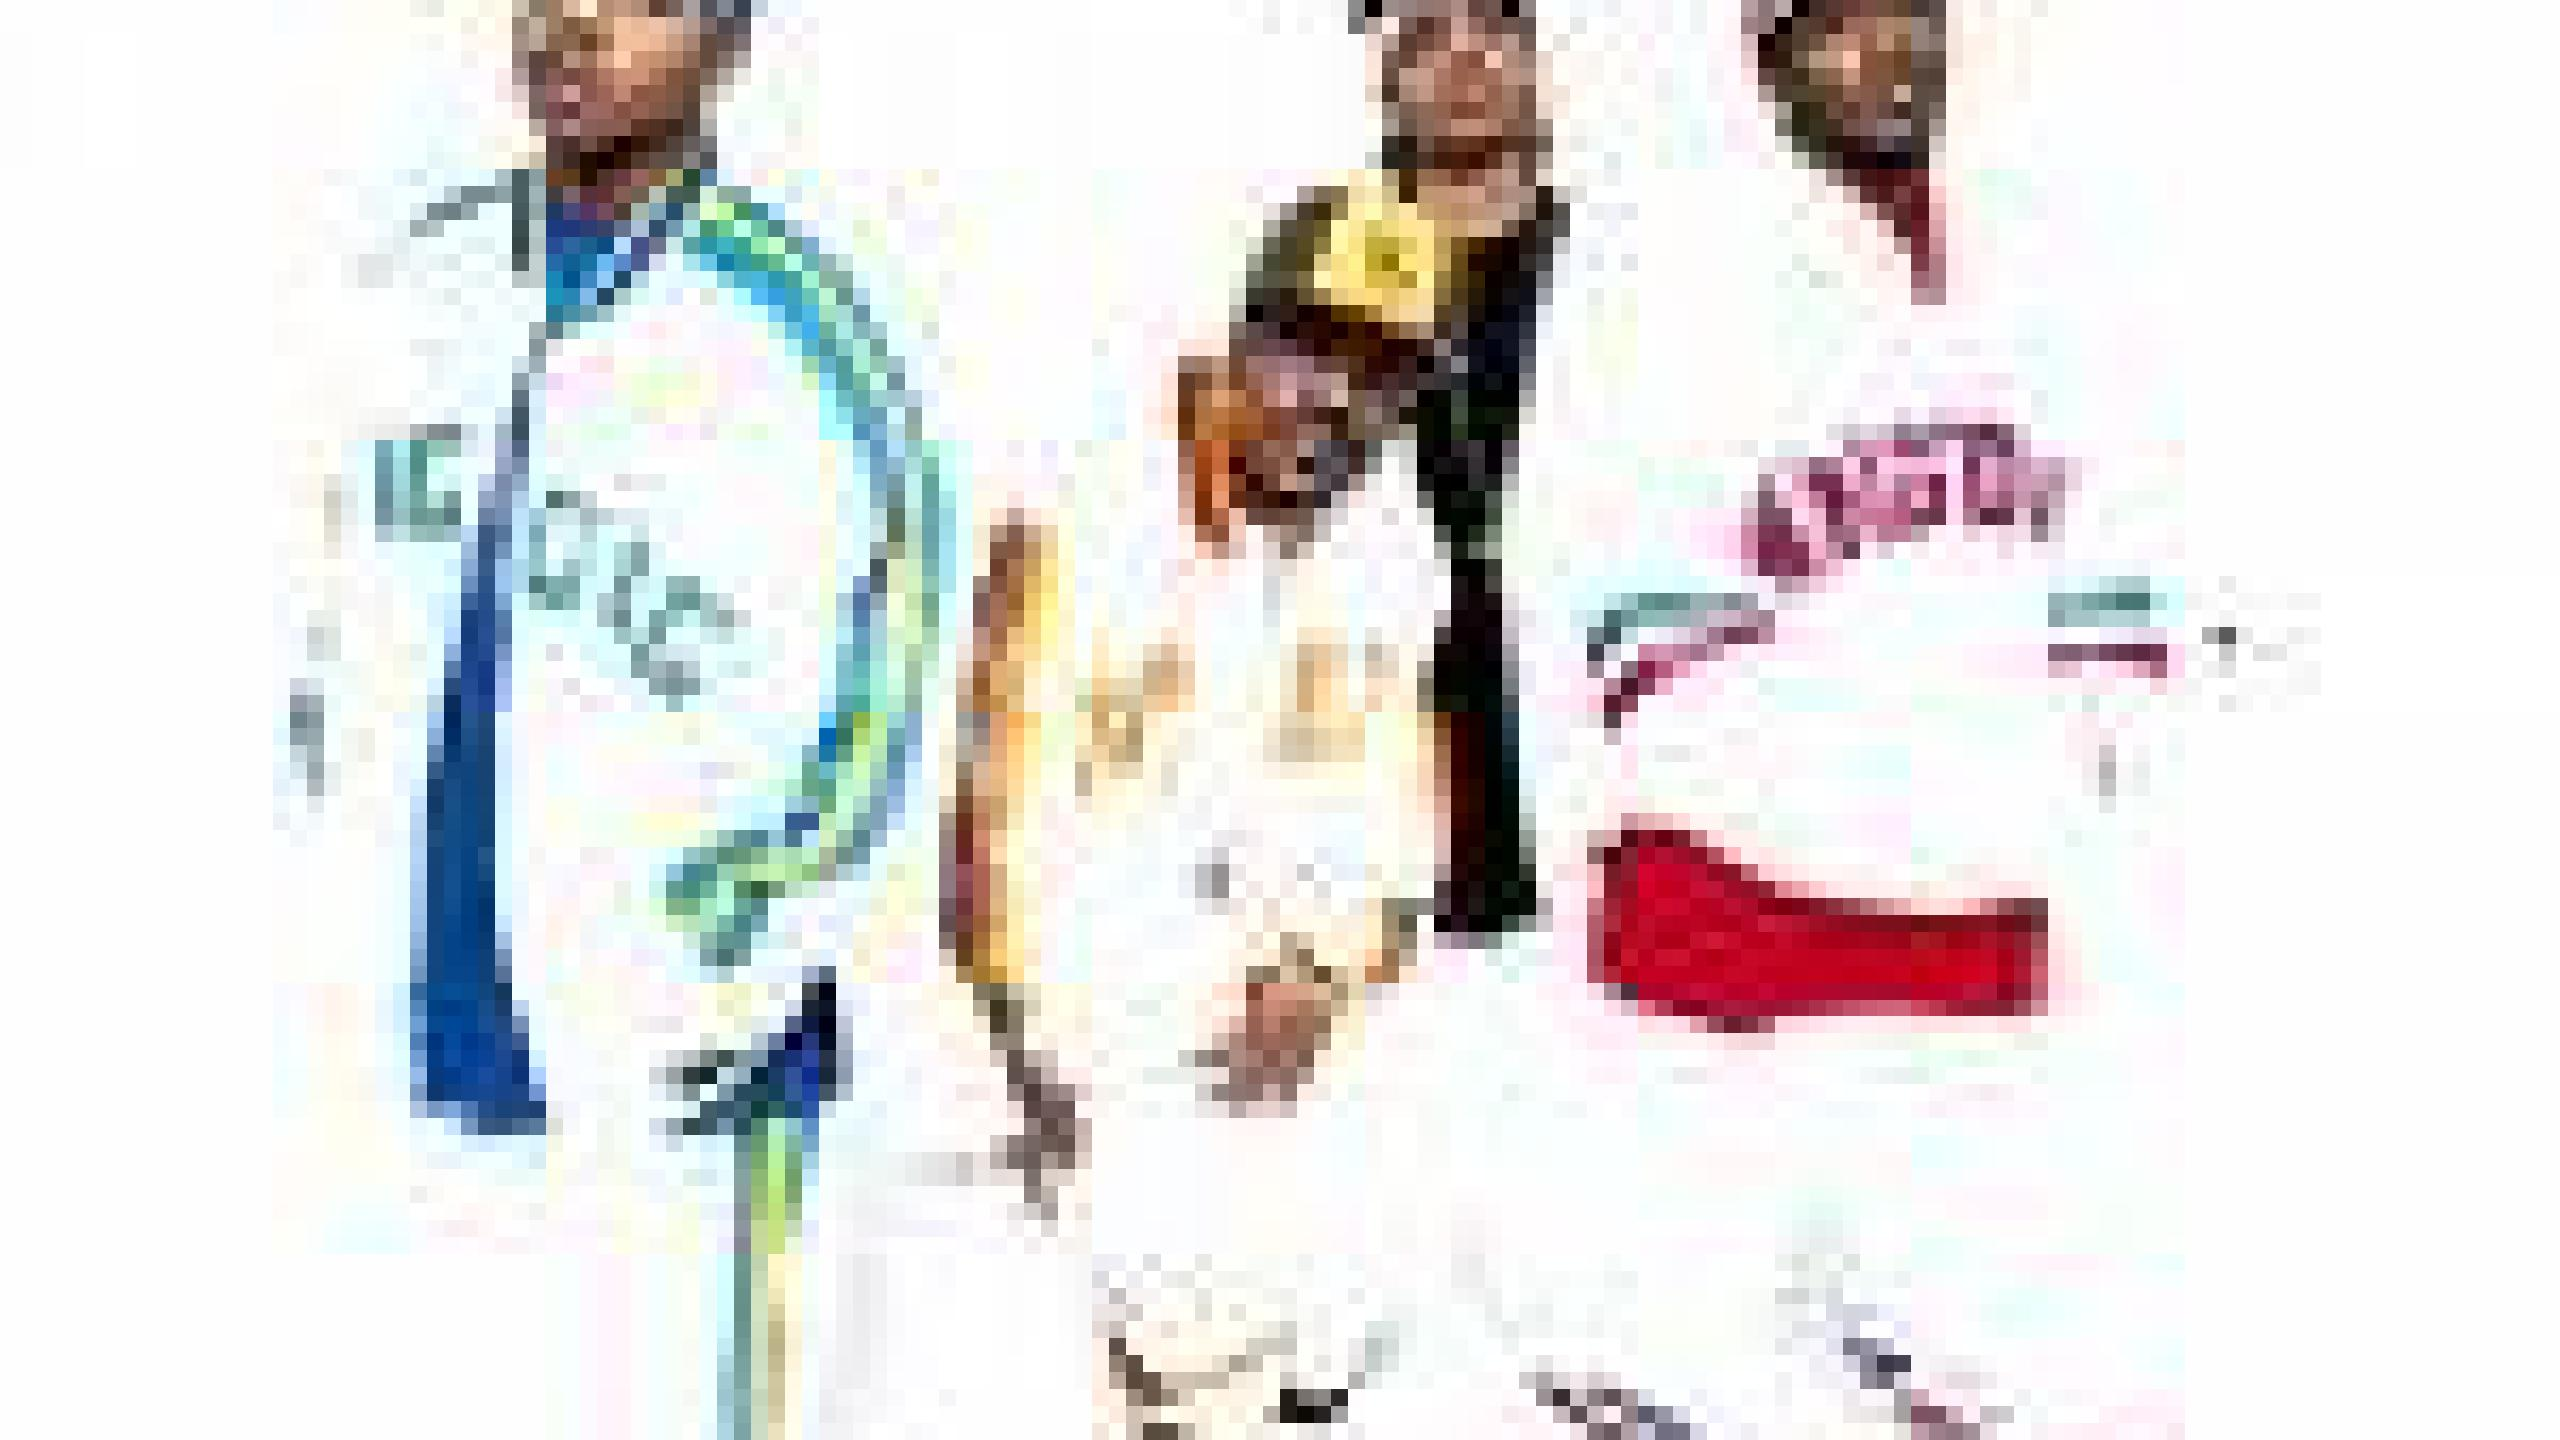 Jagged Edge Tour 2020 Jagged Edge tour dates 2019 2020. Jagged Edge tickets and concerts